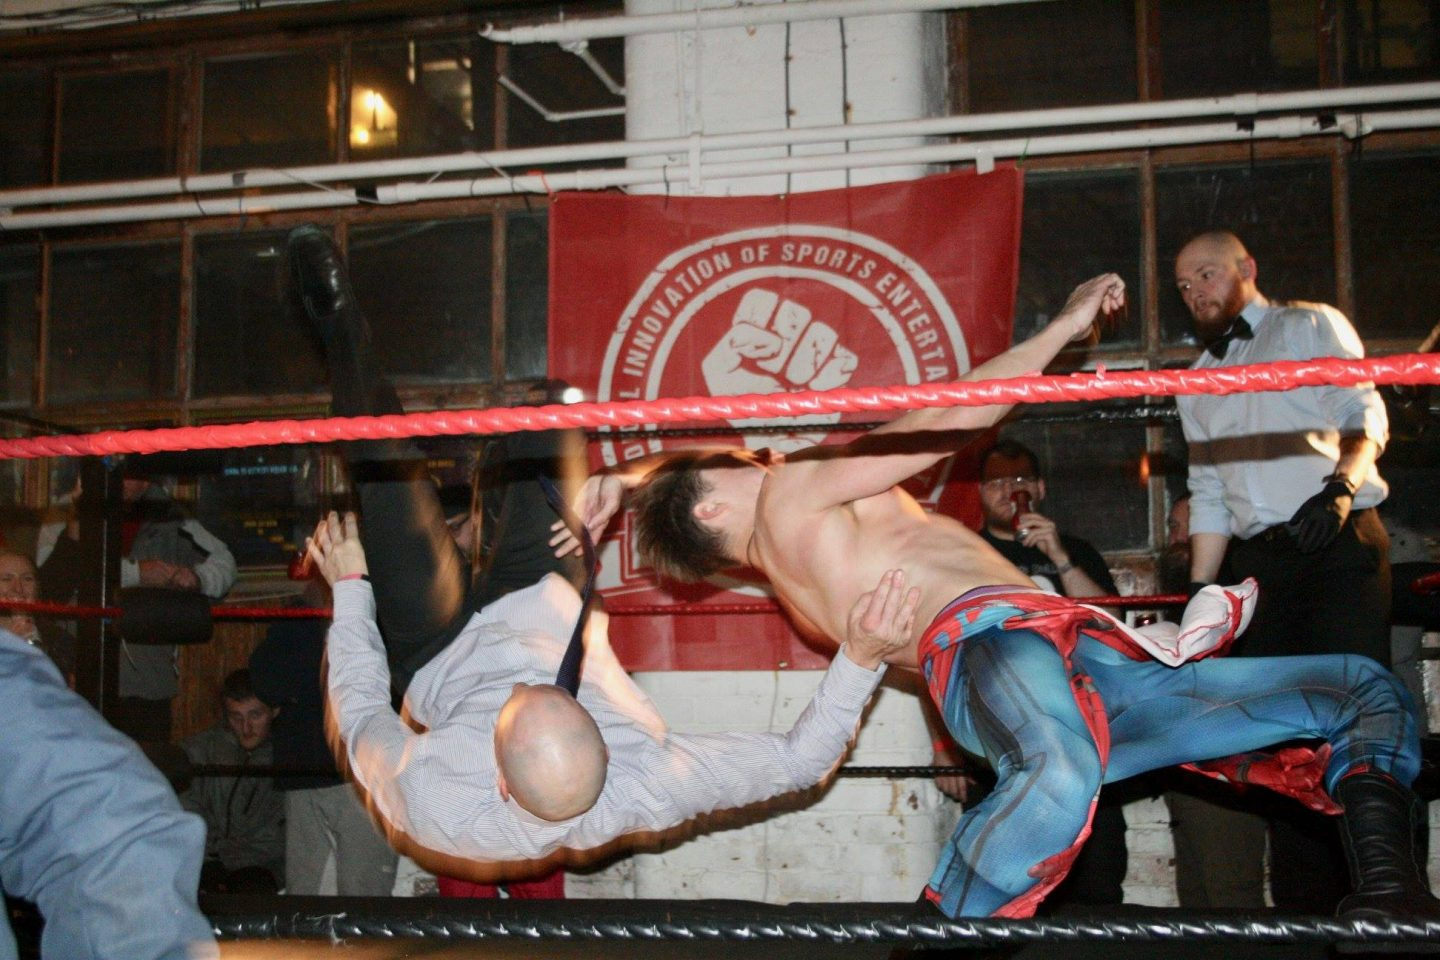 Spiderman wrestling a man in a suit and tie - action shot of them both in the air